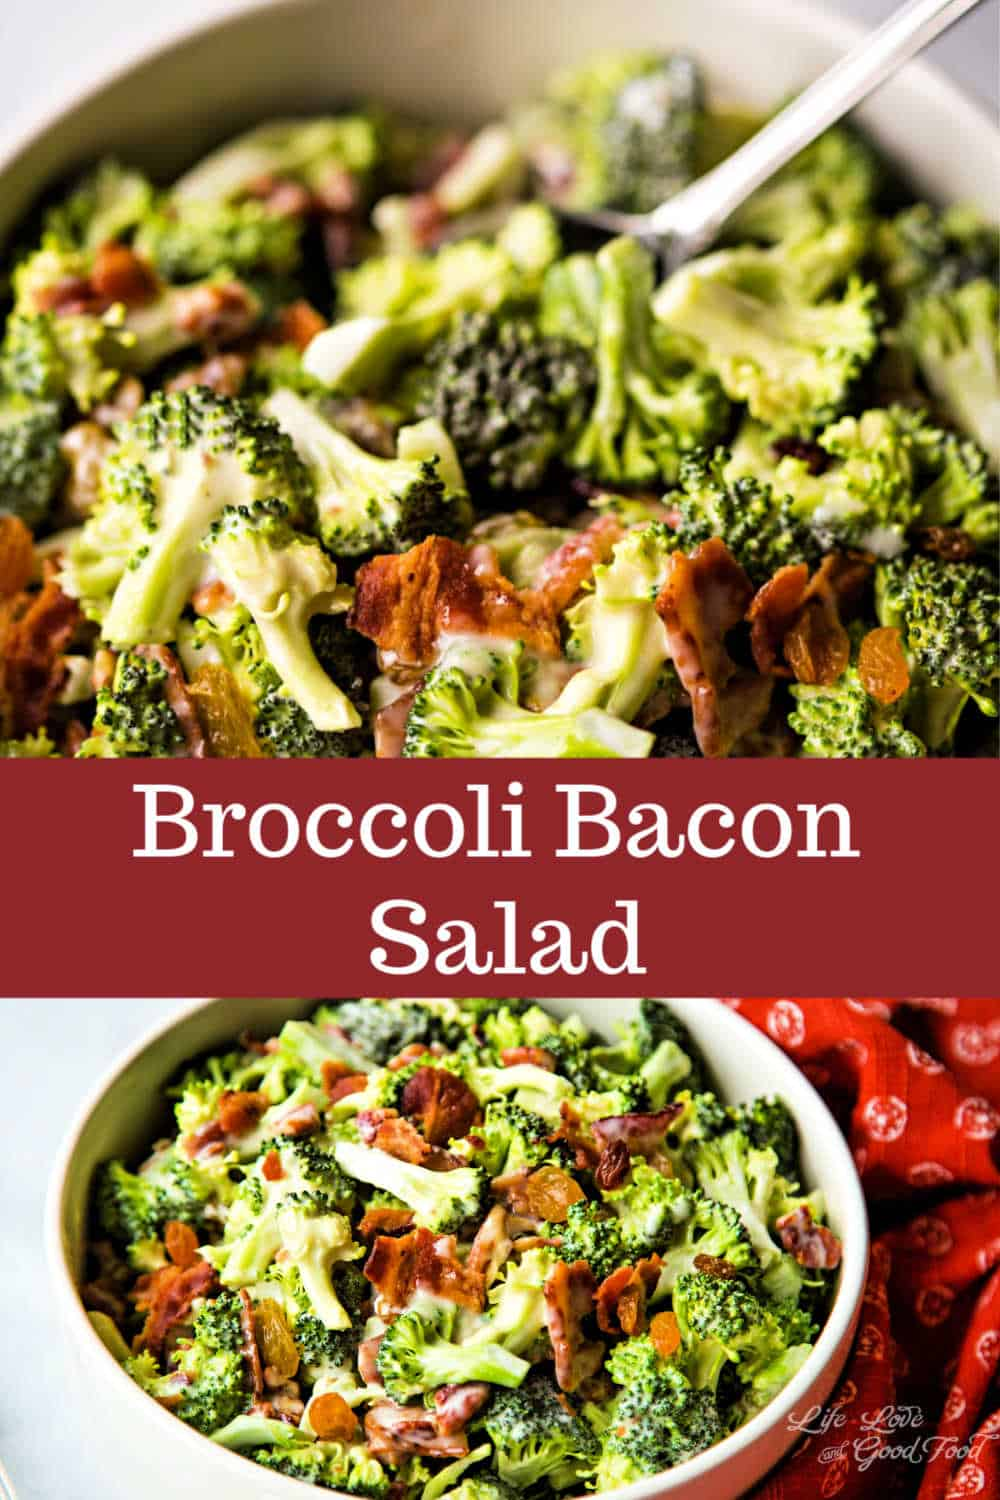 Chock full of crispy bacon, sweet golden raisins, and toasted pecans, this classic Broccoli Bacon Salad recipe is always a favorite at potluck dinners and family picnics. Served cold, this salad gets even more delicious the next day. The creamy dressing is made with just three ingredients — mayonnaise, sugar, and apple cider vinegar — and is the perfect contrast to the crunchy broccoli and chewy raisins. This recipe is the best ever!